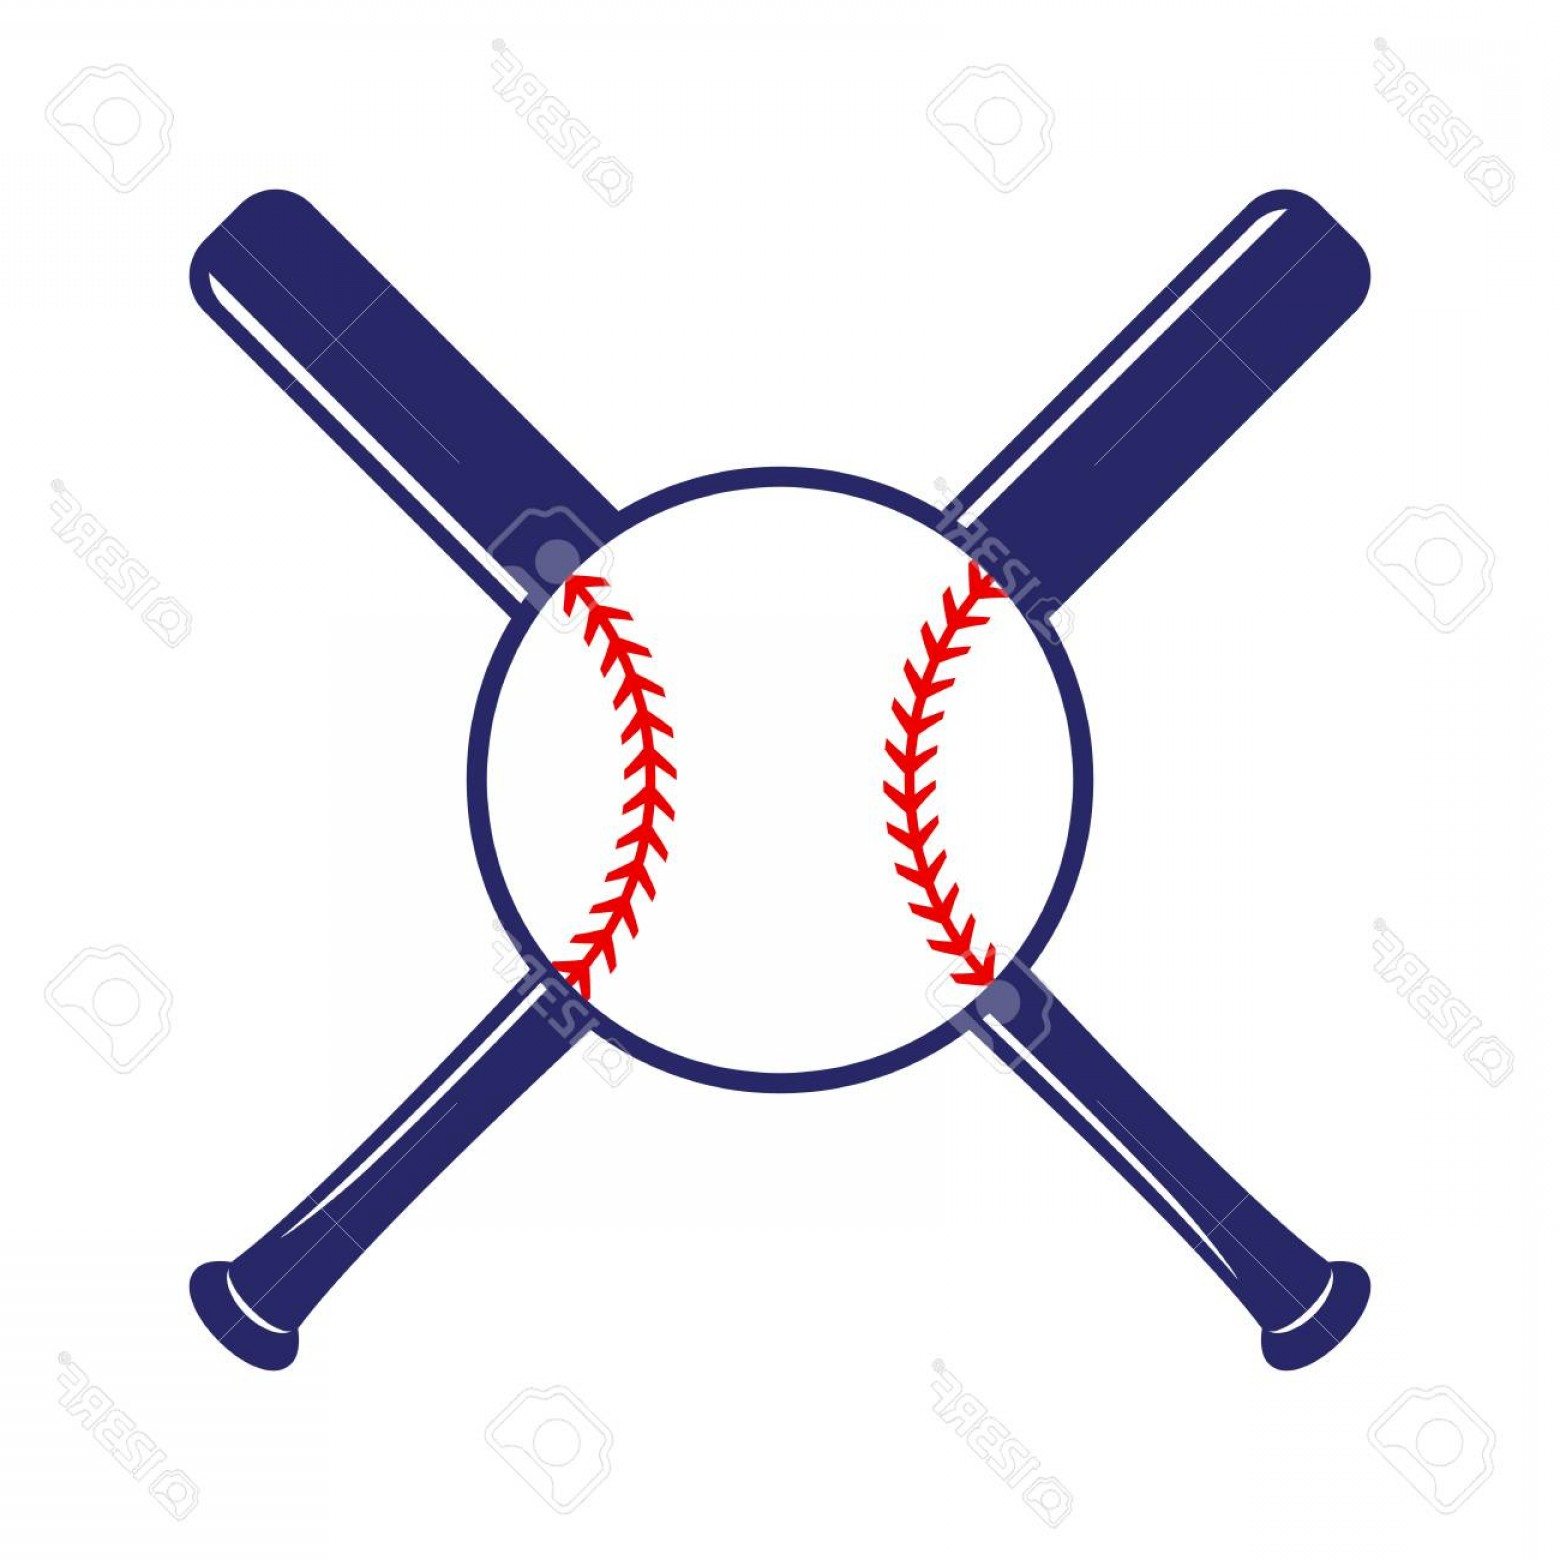 Vector Baseball Cross: Photostock Vector Baseball Crossed Bats With Ball Criss Cross Bats Baseball Flat Vector Illustration